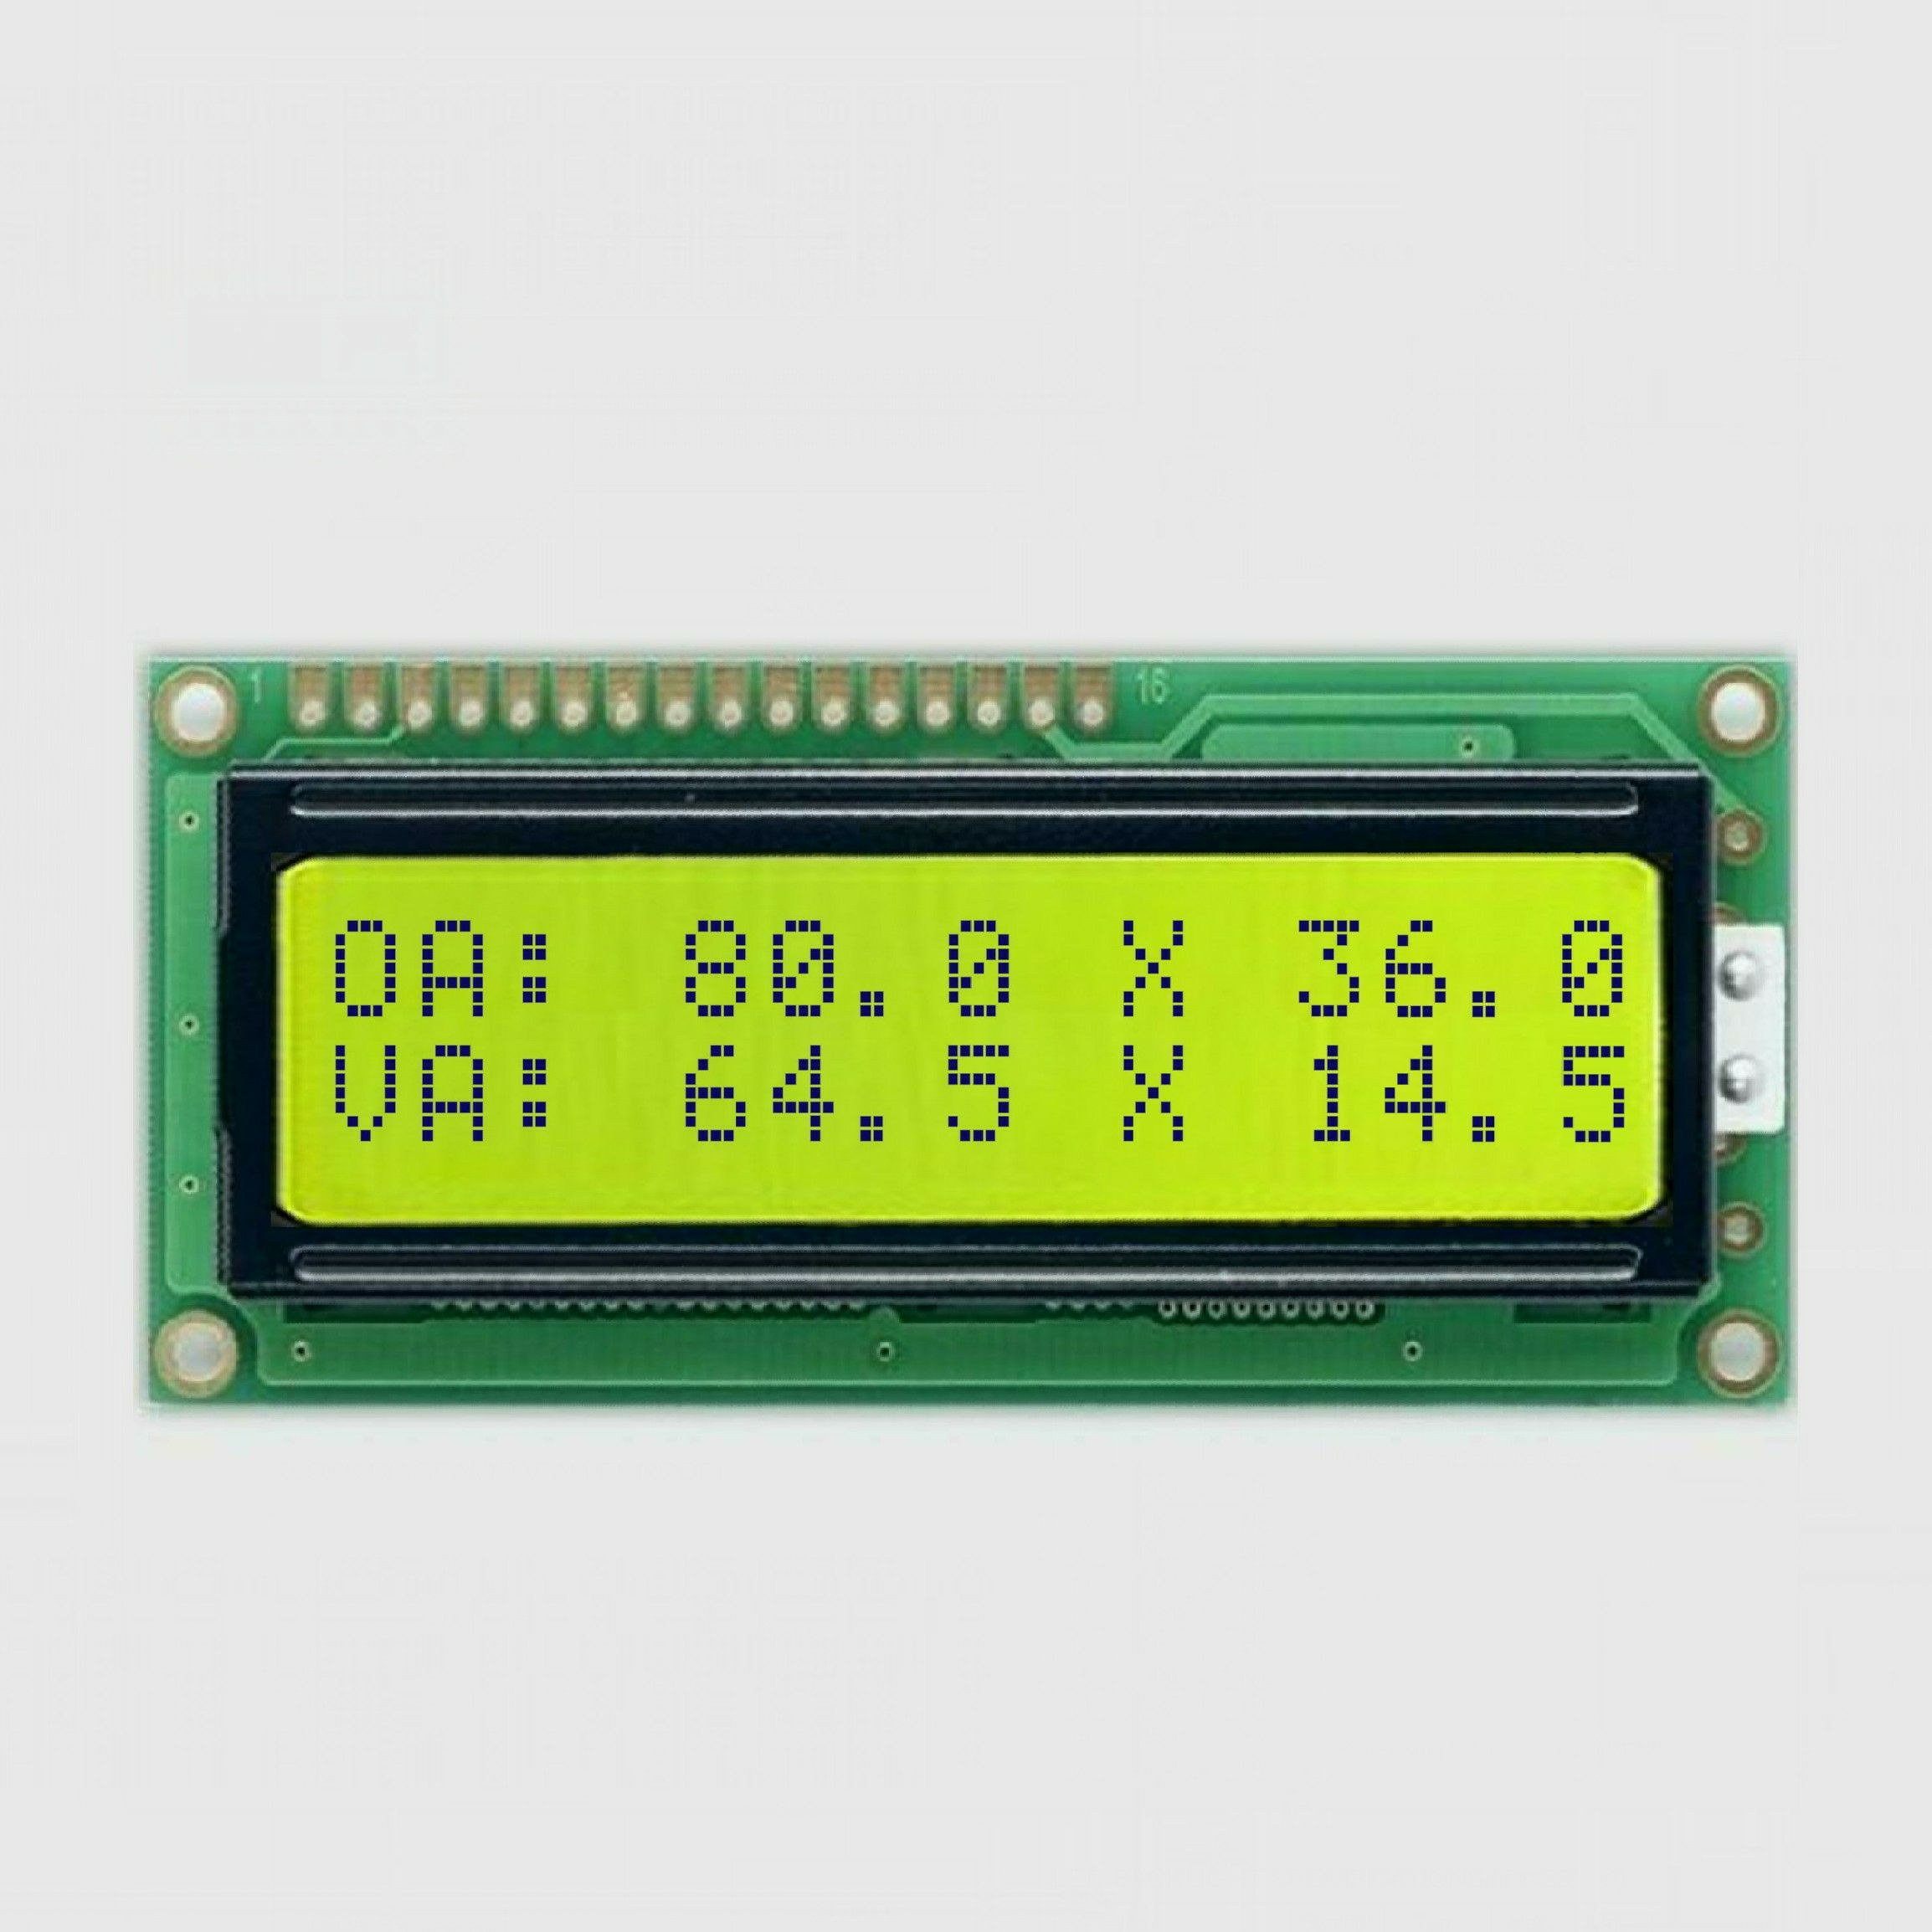 lcd display module 16x2 character scree panel with controller hd44780 equivalent STN yellow green mode 5V power supply 8bits